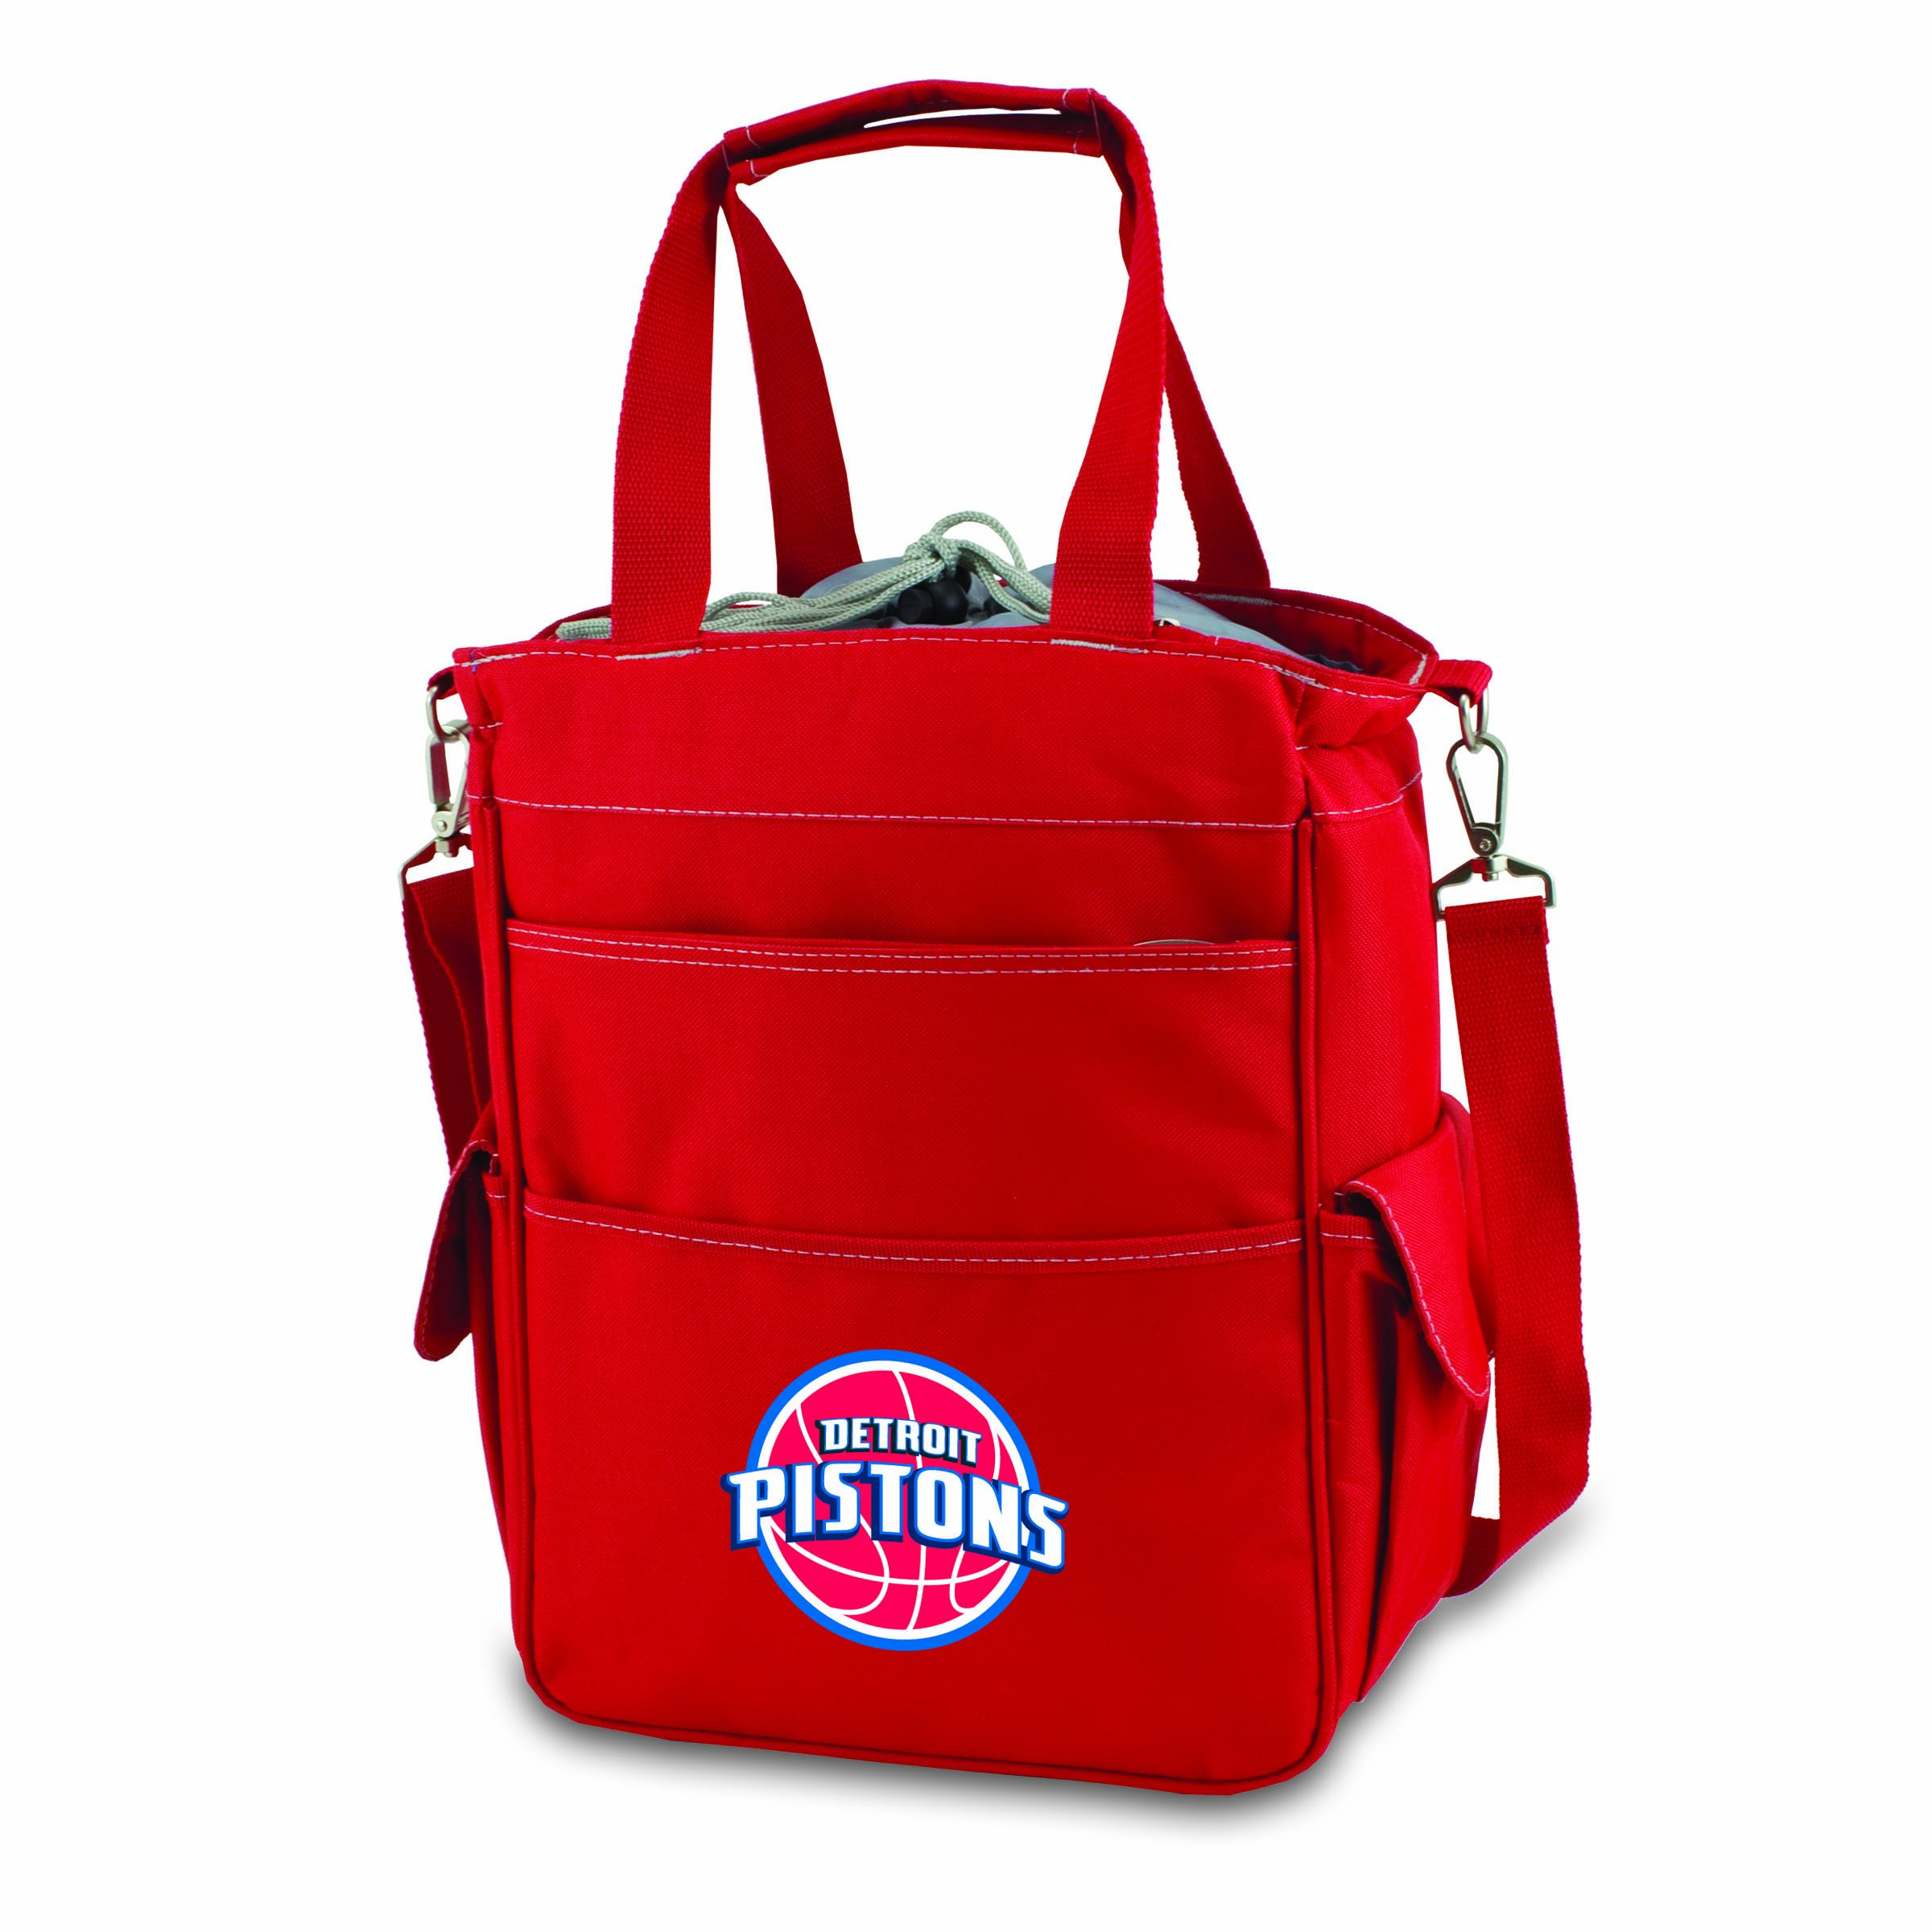 PICNIC TIME NBA Detroit Pistons Insulated Activo Cooler Tote, Red by PICNIC TIME